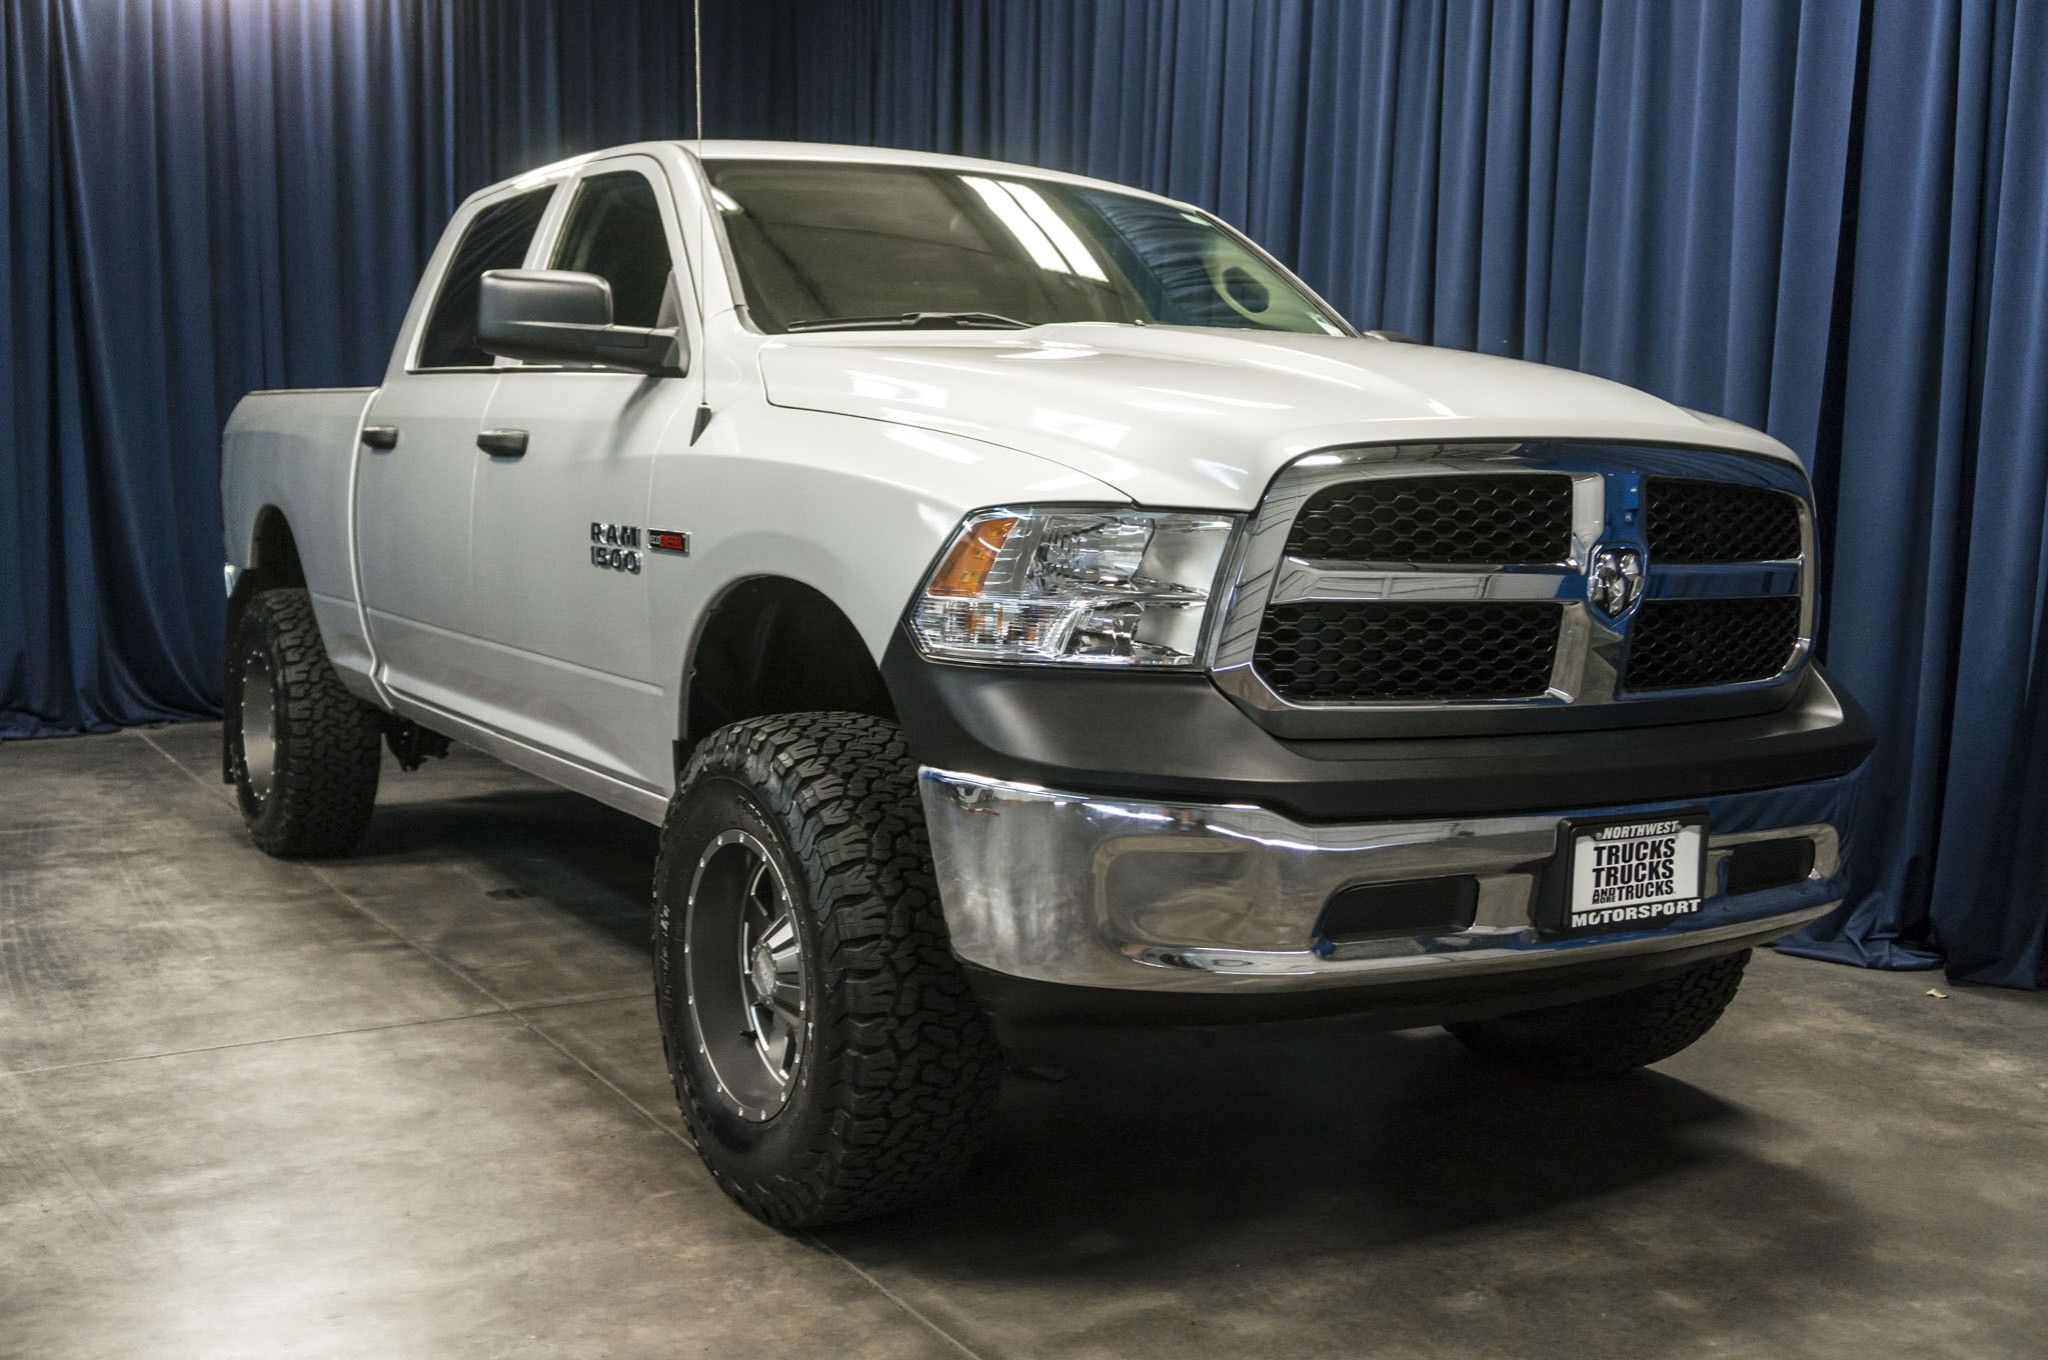 Used Lifted 2016 Dodge Ram 1500 4x4 Diesel Truck For Sale